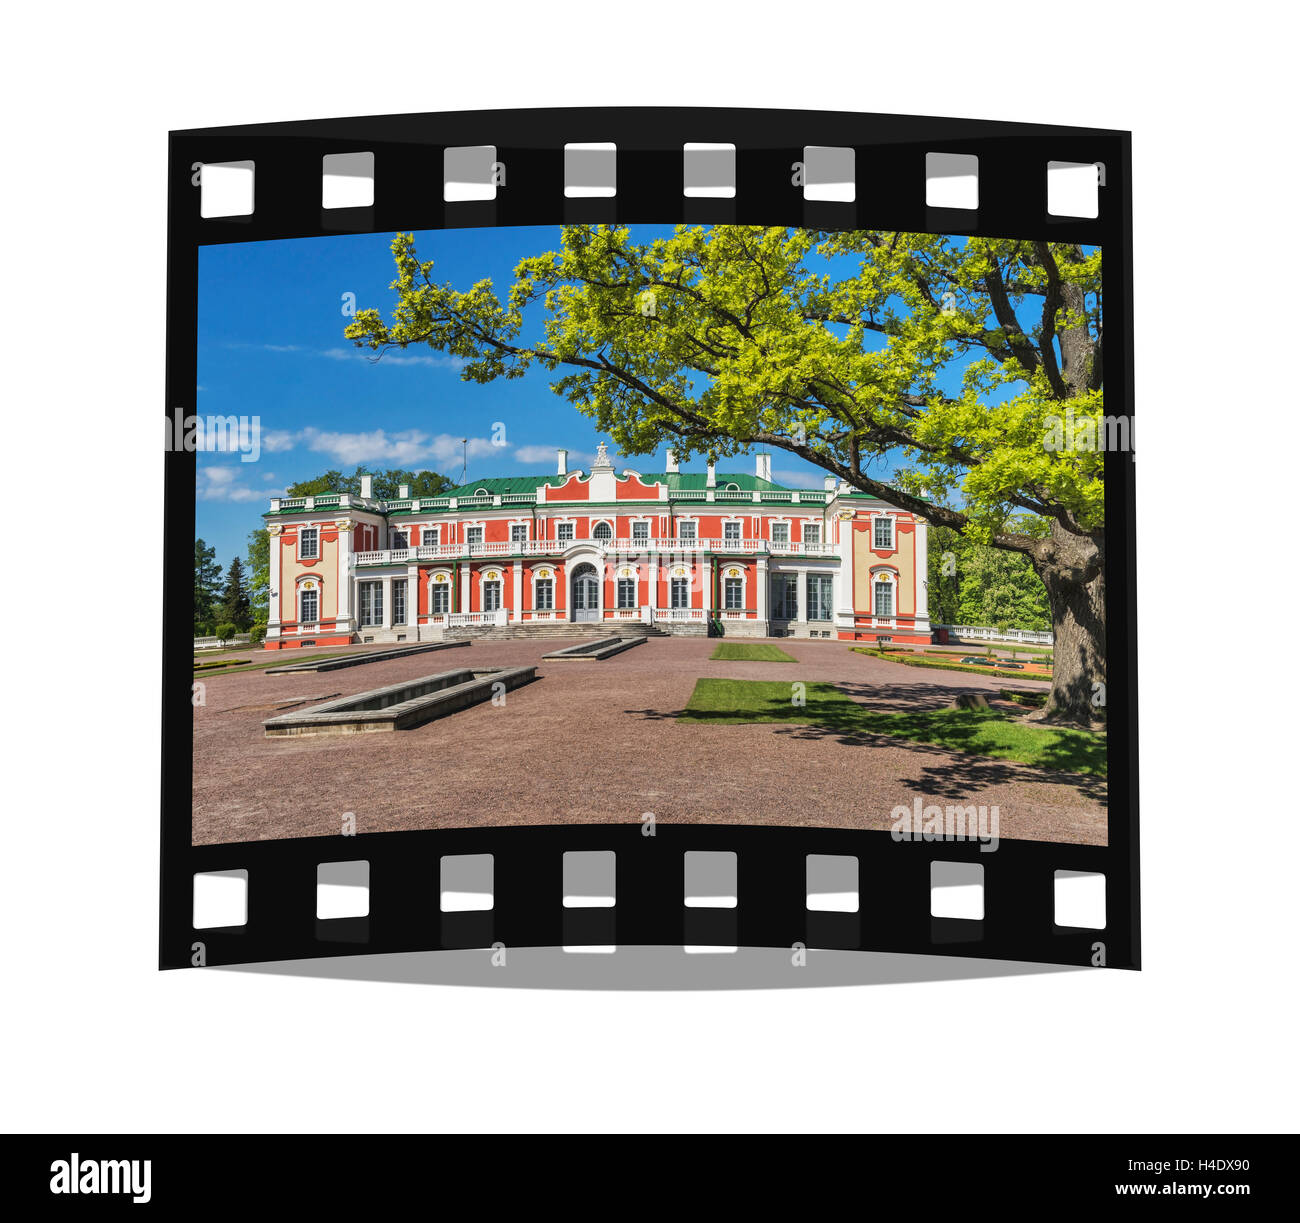 Kadriorg Palace was built between 1718 and 1725 in the Petrine Baroque style, Tallinn, Estonia, Baltic States, Europe - Stock Image